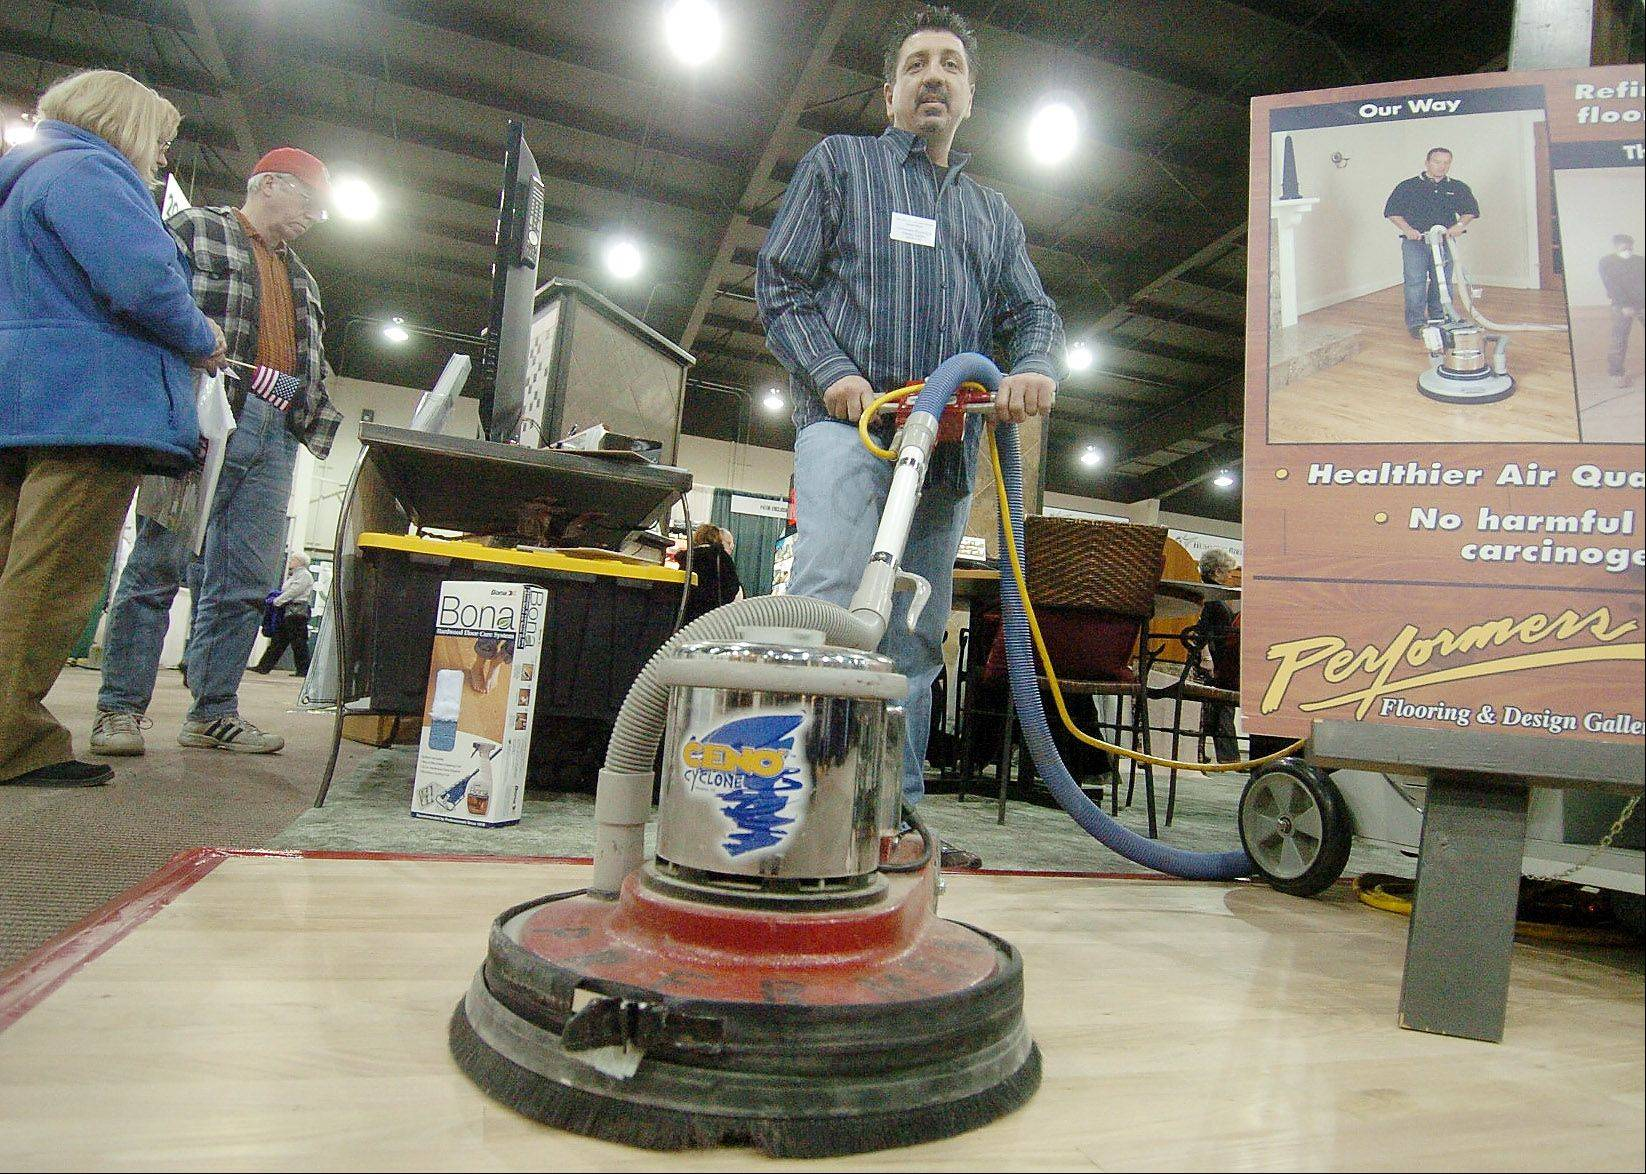 John Psyhos of Performers Flooring and Design Gallery of Bloomingdale demonstrates floor sanding at The Old House New House Home Show at Pheasant Run Resort.